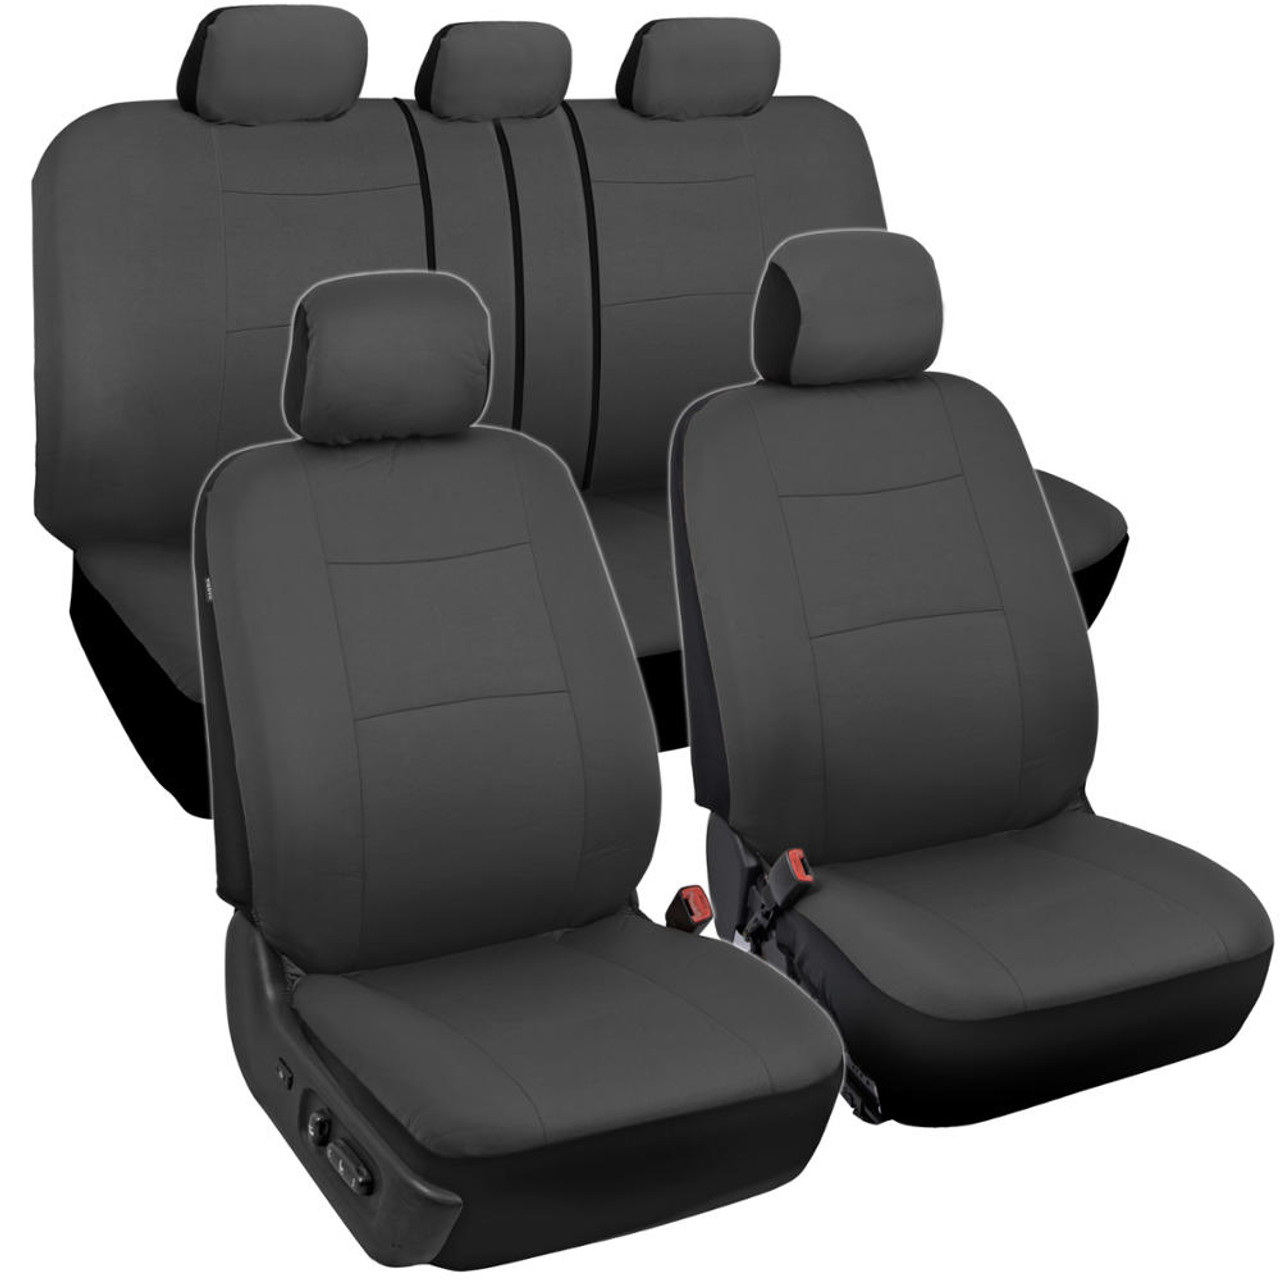 Full Set Heavy Duty Black Waterproof Car seatcovers Fiesta